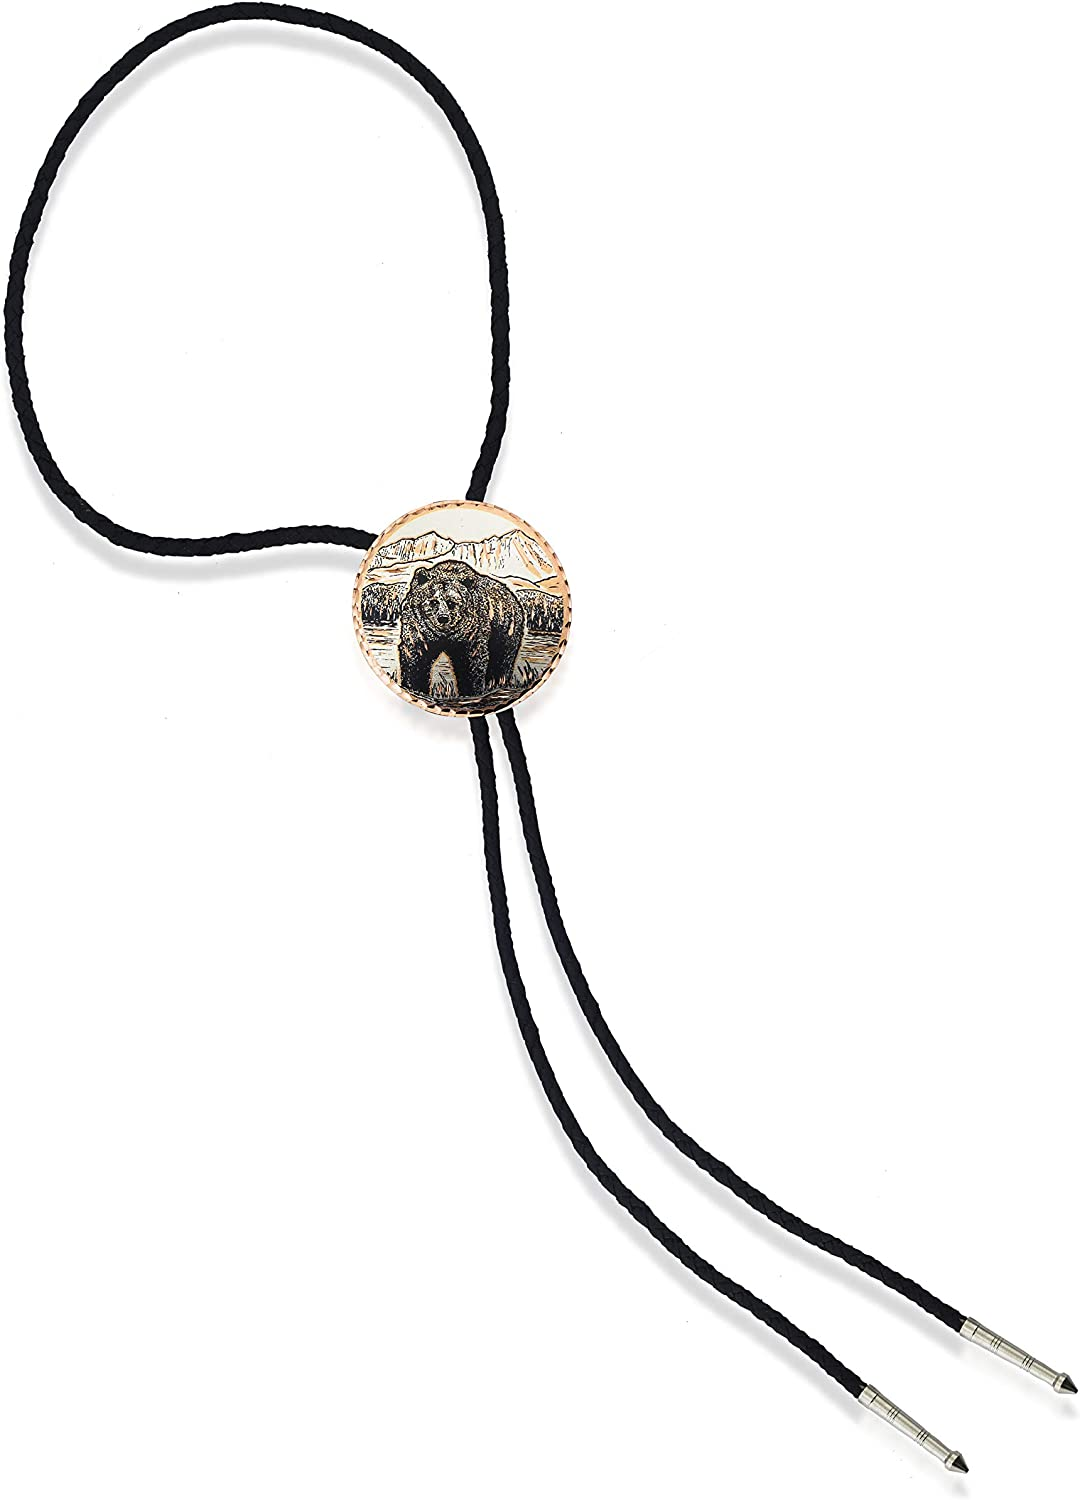 Copper Reflections Handmade Circular Shaped Bolo Ties with Wildlife Art, Bolo Tie for Men, Western Cowboy Bola Tie